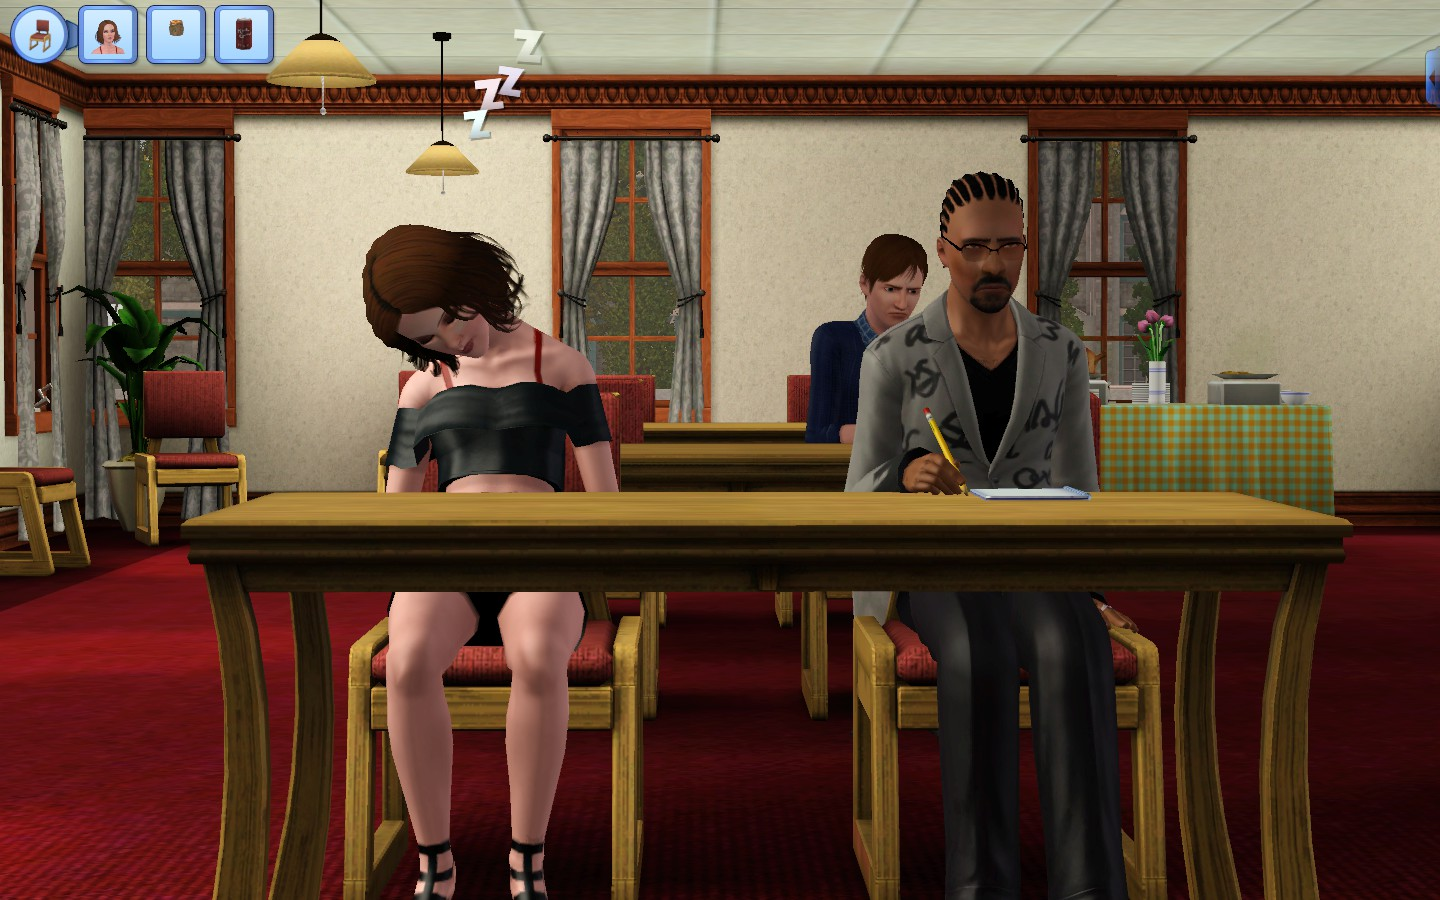 The sims 3 showtime free pussy dick  hentia pic